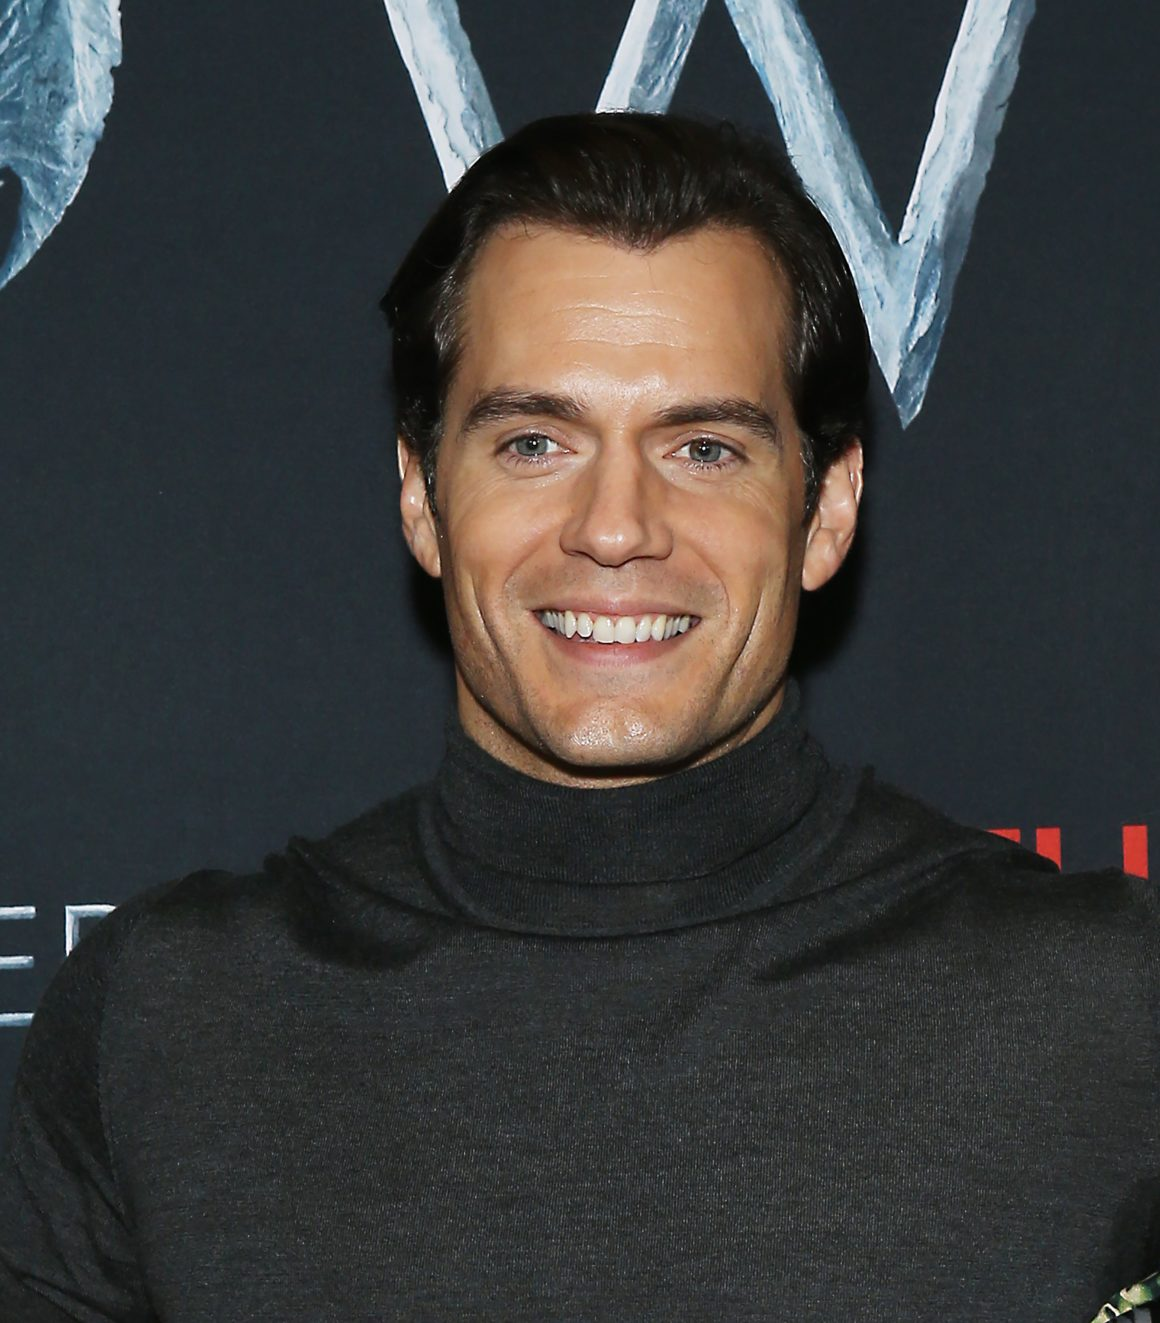 Henry Cavill at the Photocall For Netflix's